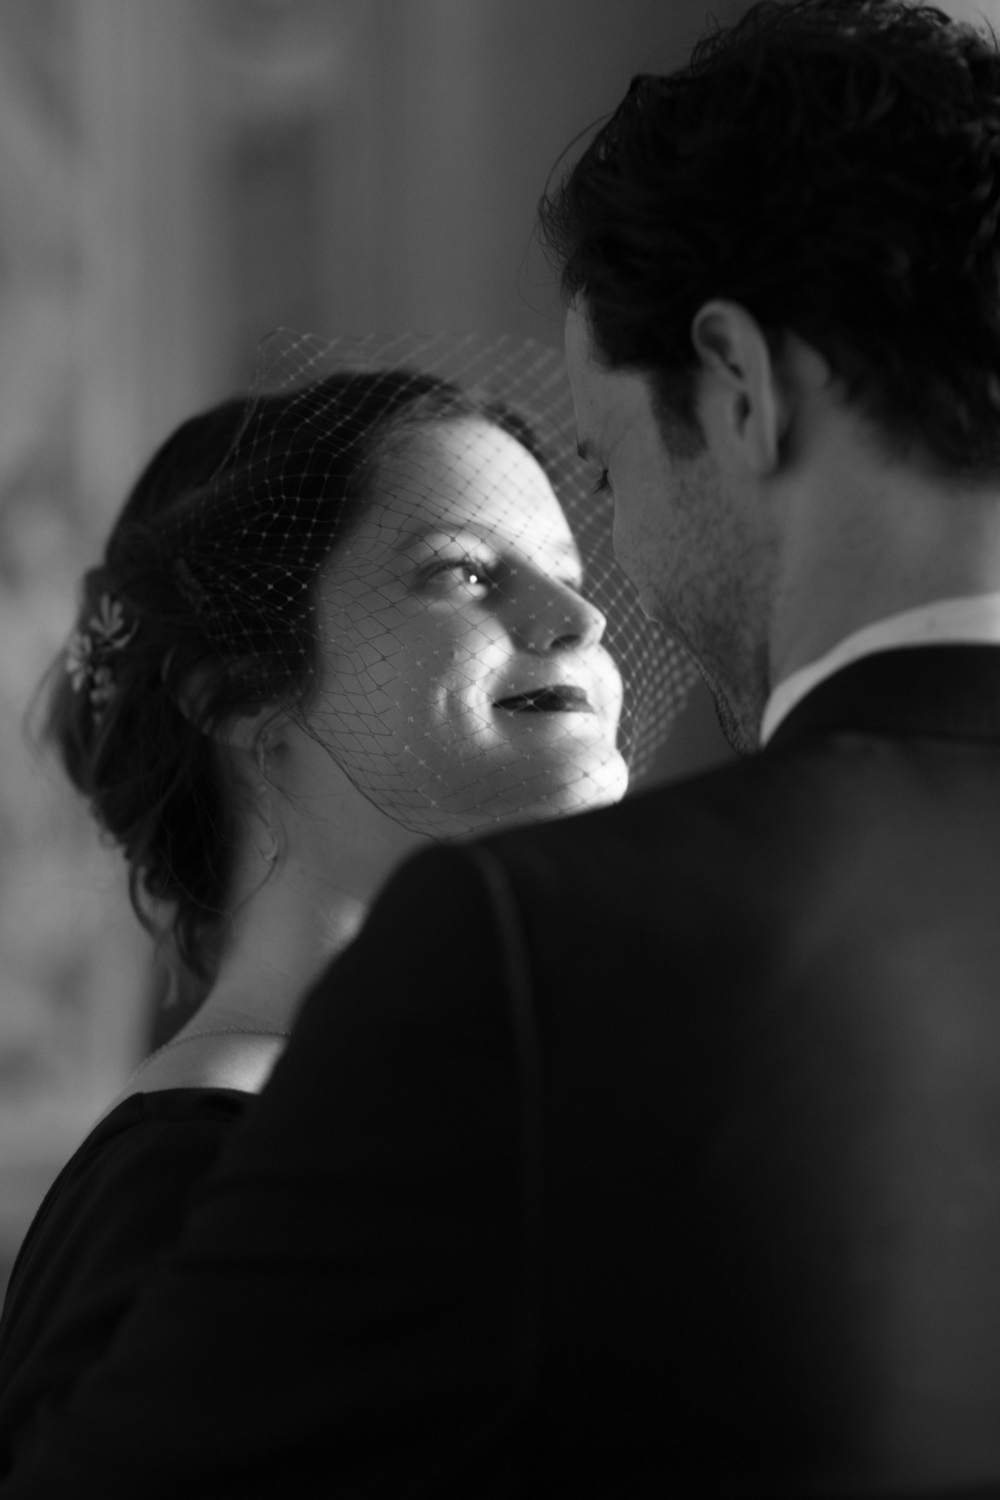 Black and white portrait of a bride in a birdcage veil looking at her husband.